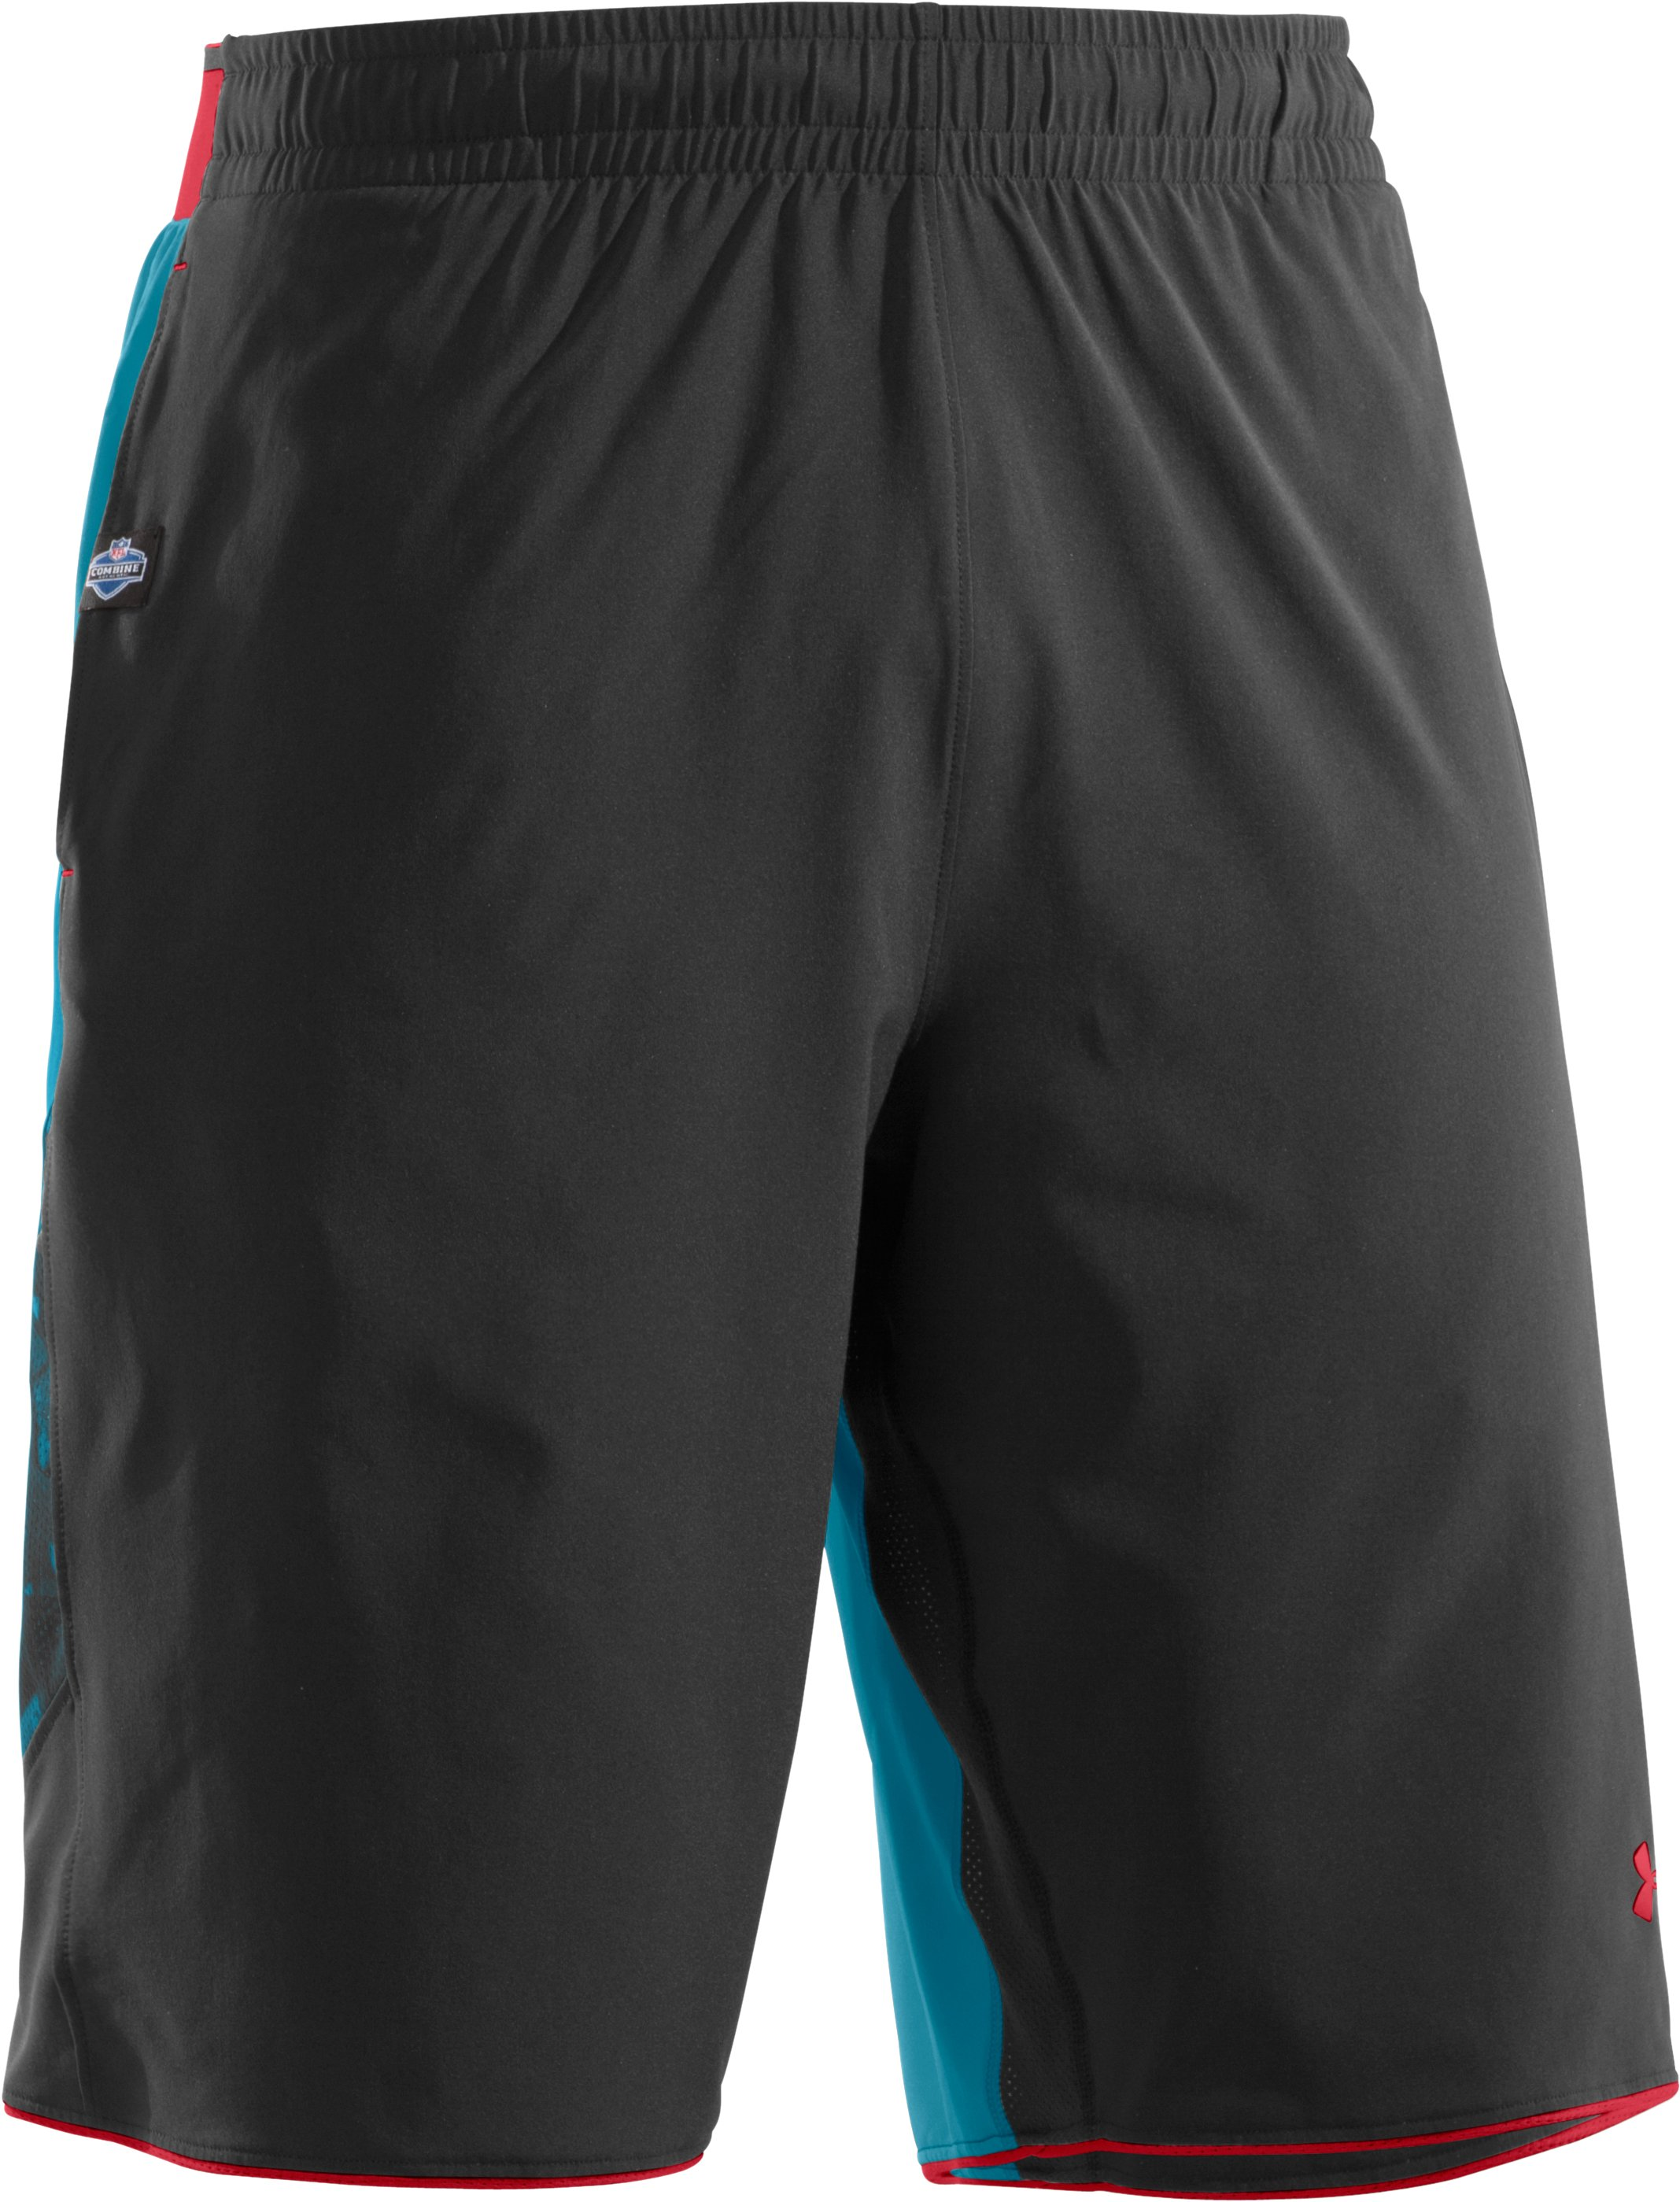 Men's NFL Combine Authentic Shorts, Black